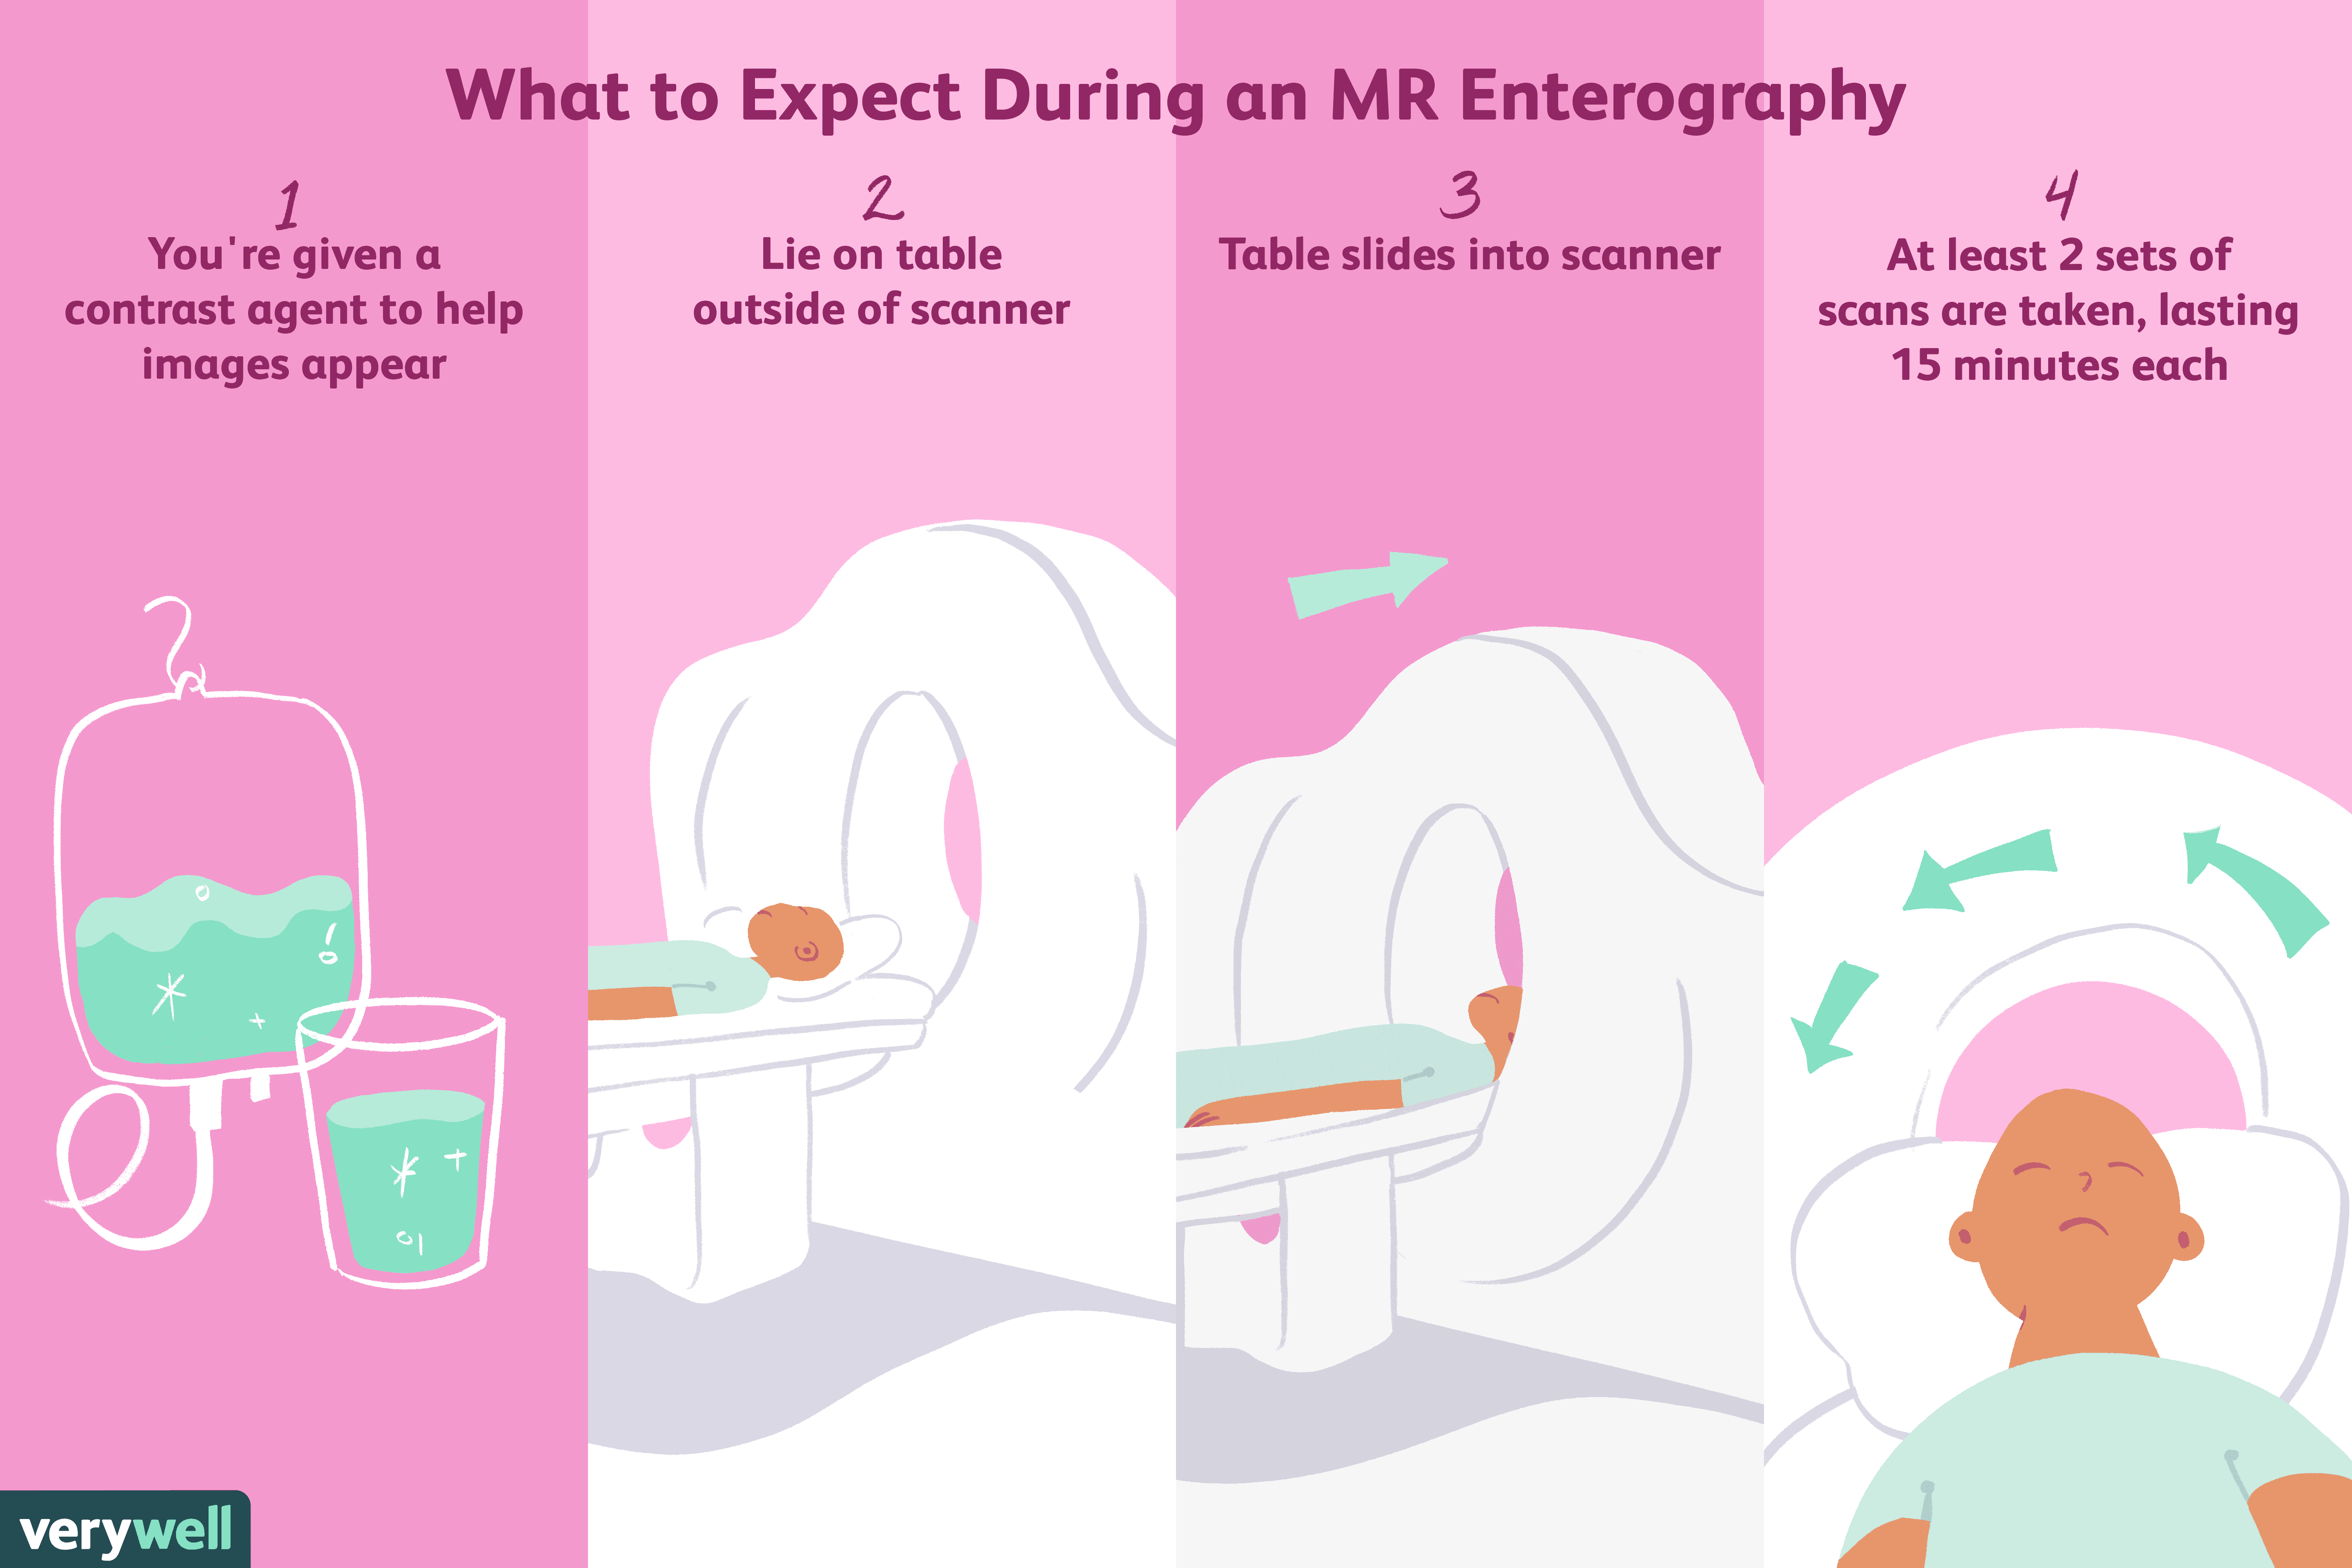 What to expect during an MR Enterography